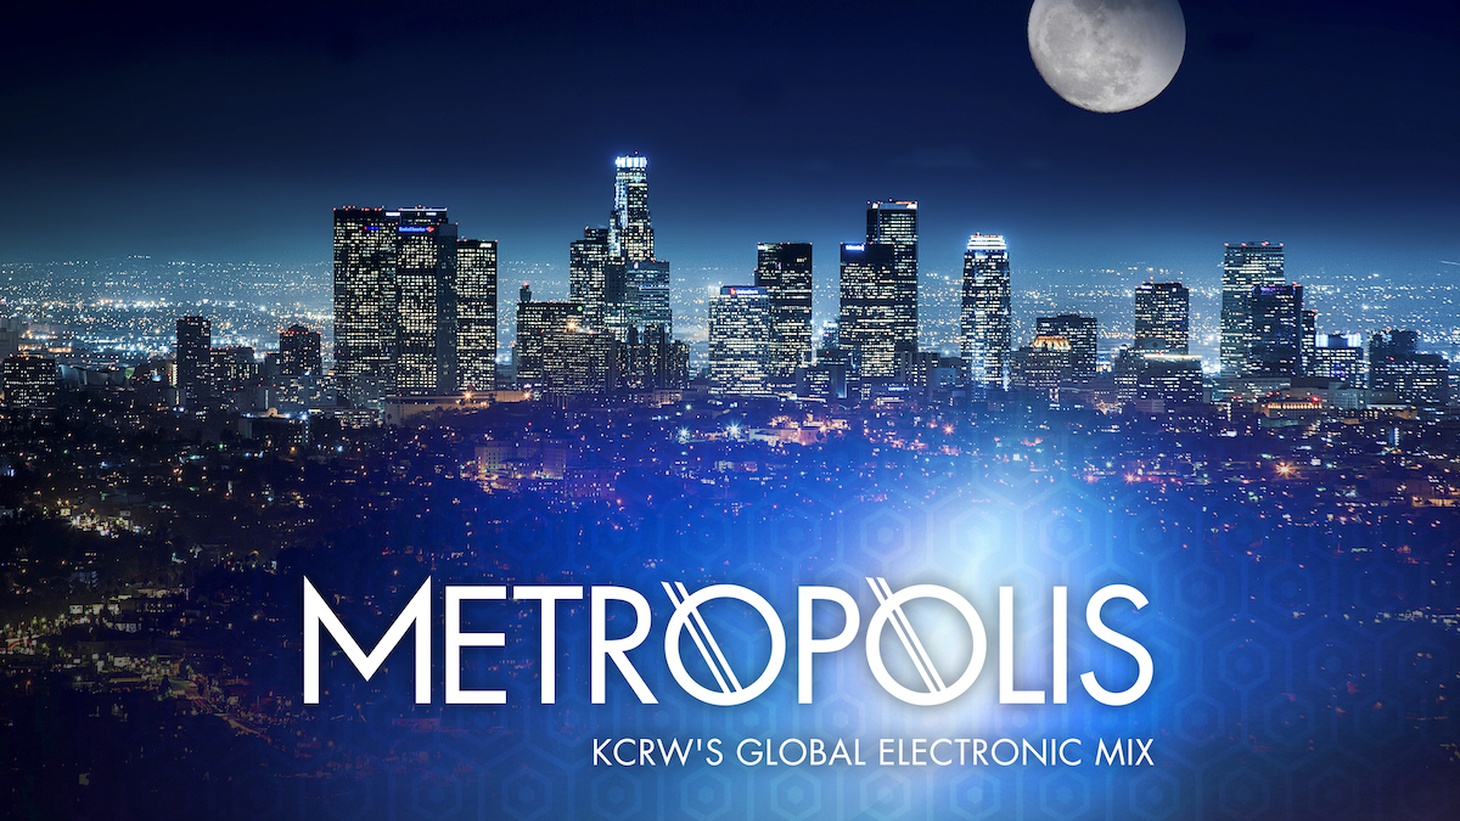 Metropolis this week features new releases from the Parisian record label Kitsune, fresh sounds from our Dutch pals Kraak & Smaak, and acclaimed veteran producer Dennis Ferrer sends us a feel good House anthem. Get ready for a bootyquake!